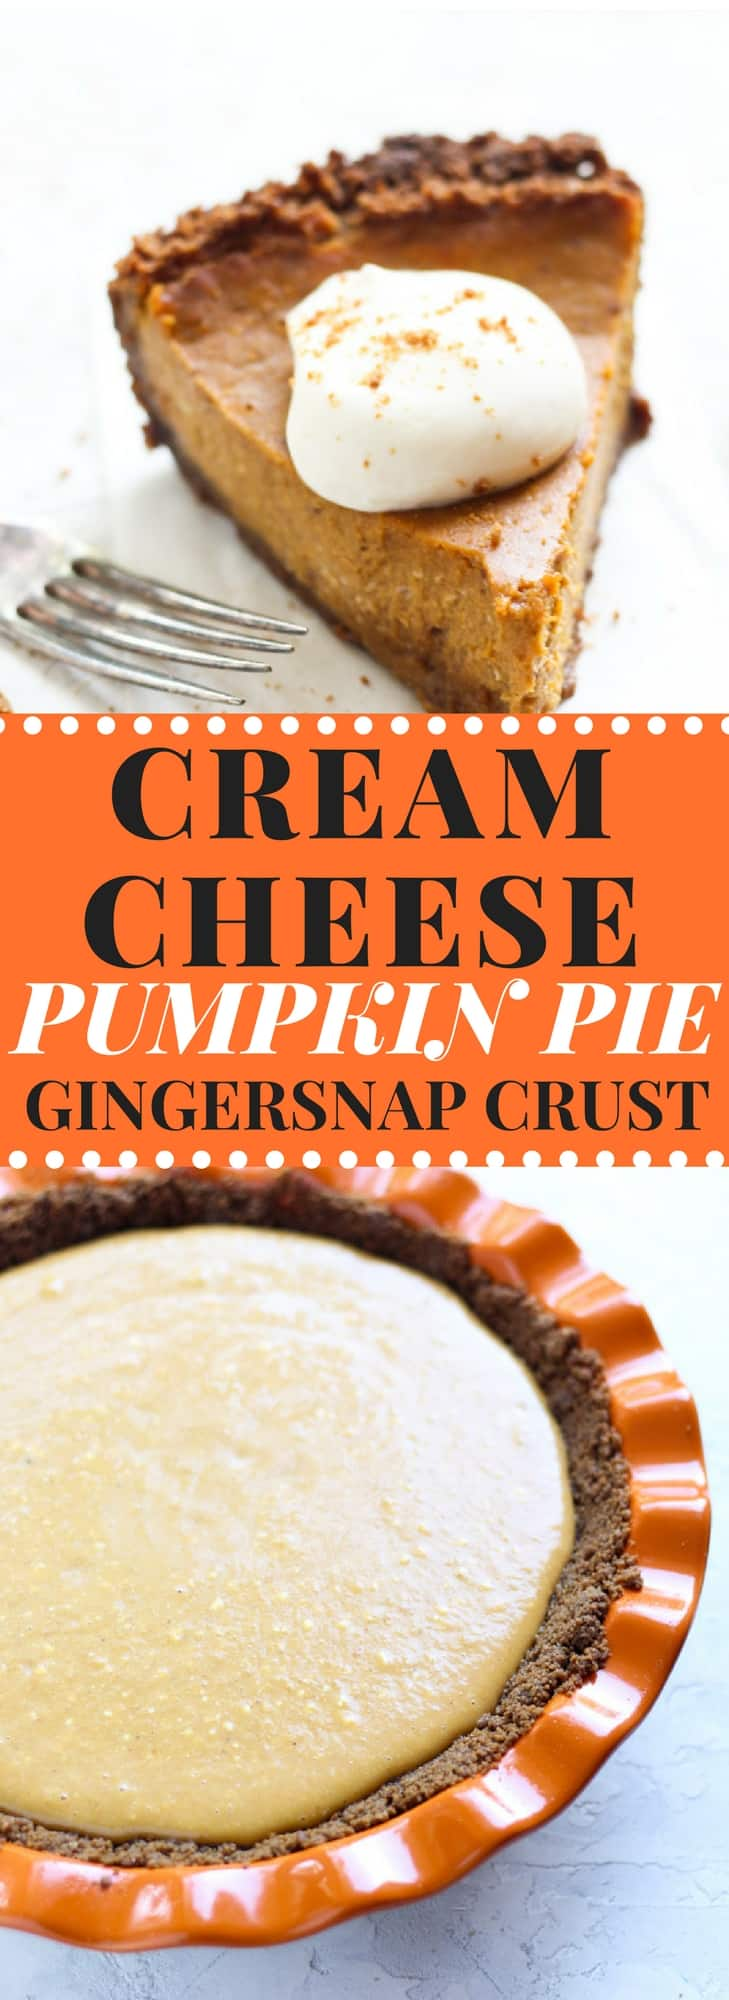 Cream Cheese Pumpkin Pie with Gingersnap Crust Recipe and Video! Fluffy and creamy pumpkin pie filling with a cookie crust is so easy to make